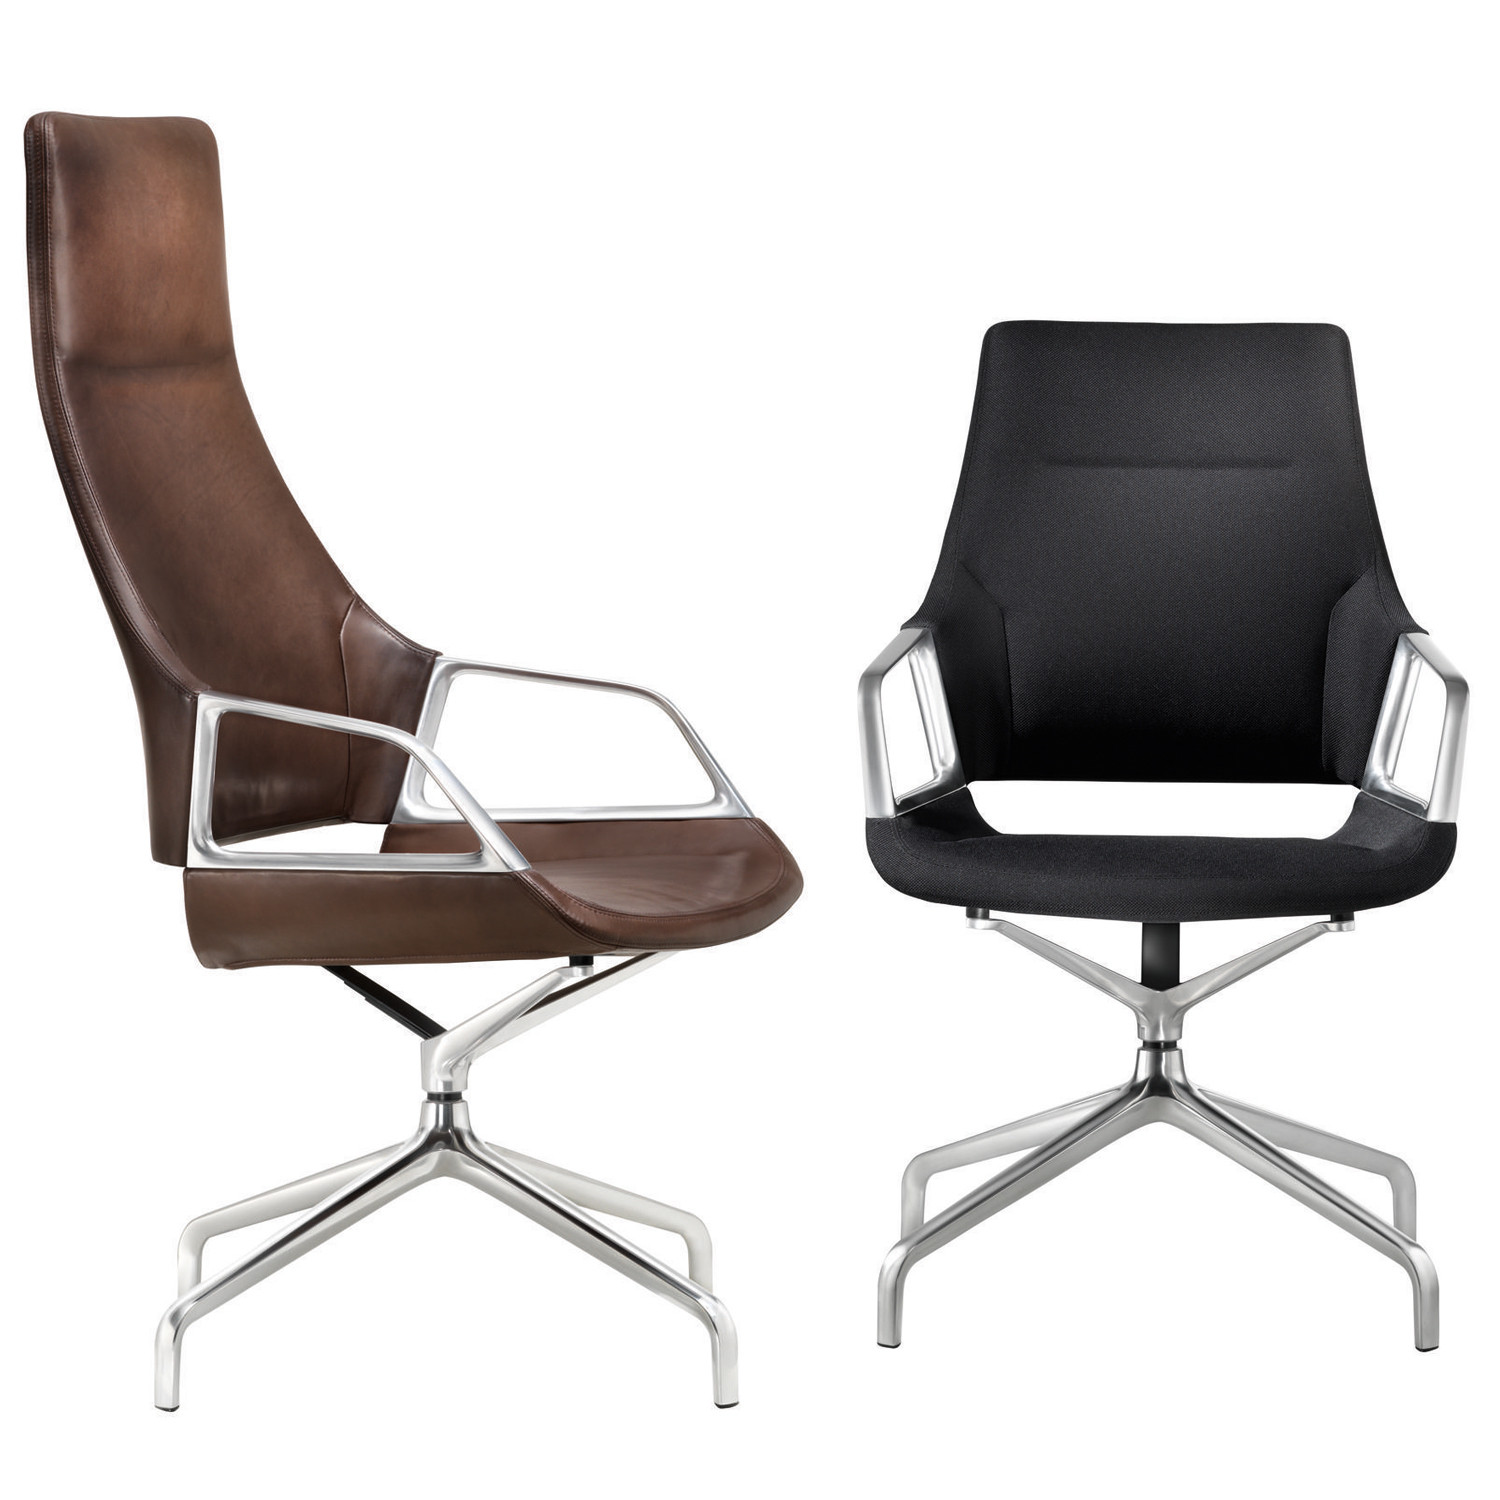 city chairs furnitue chair products meeting zen furniture range office from price conference